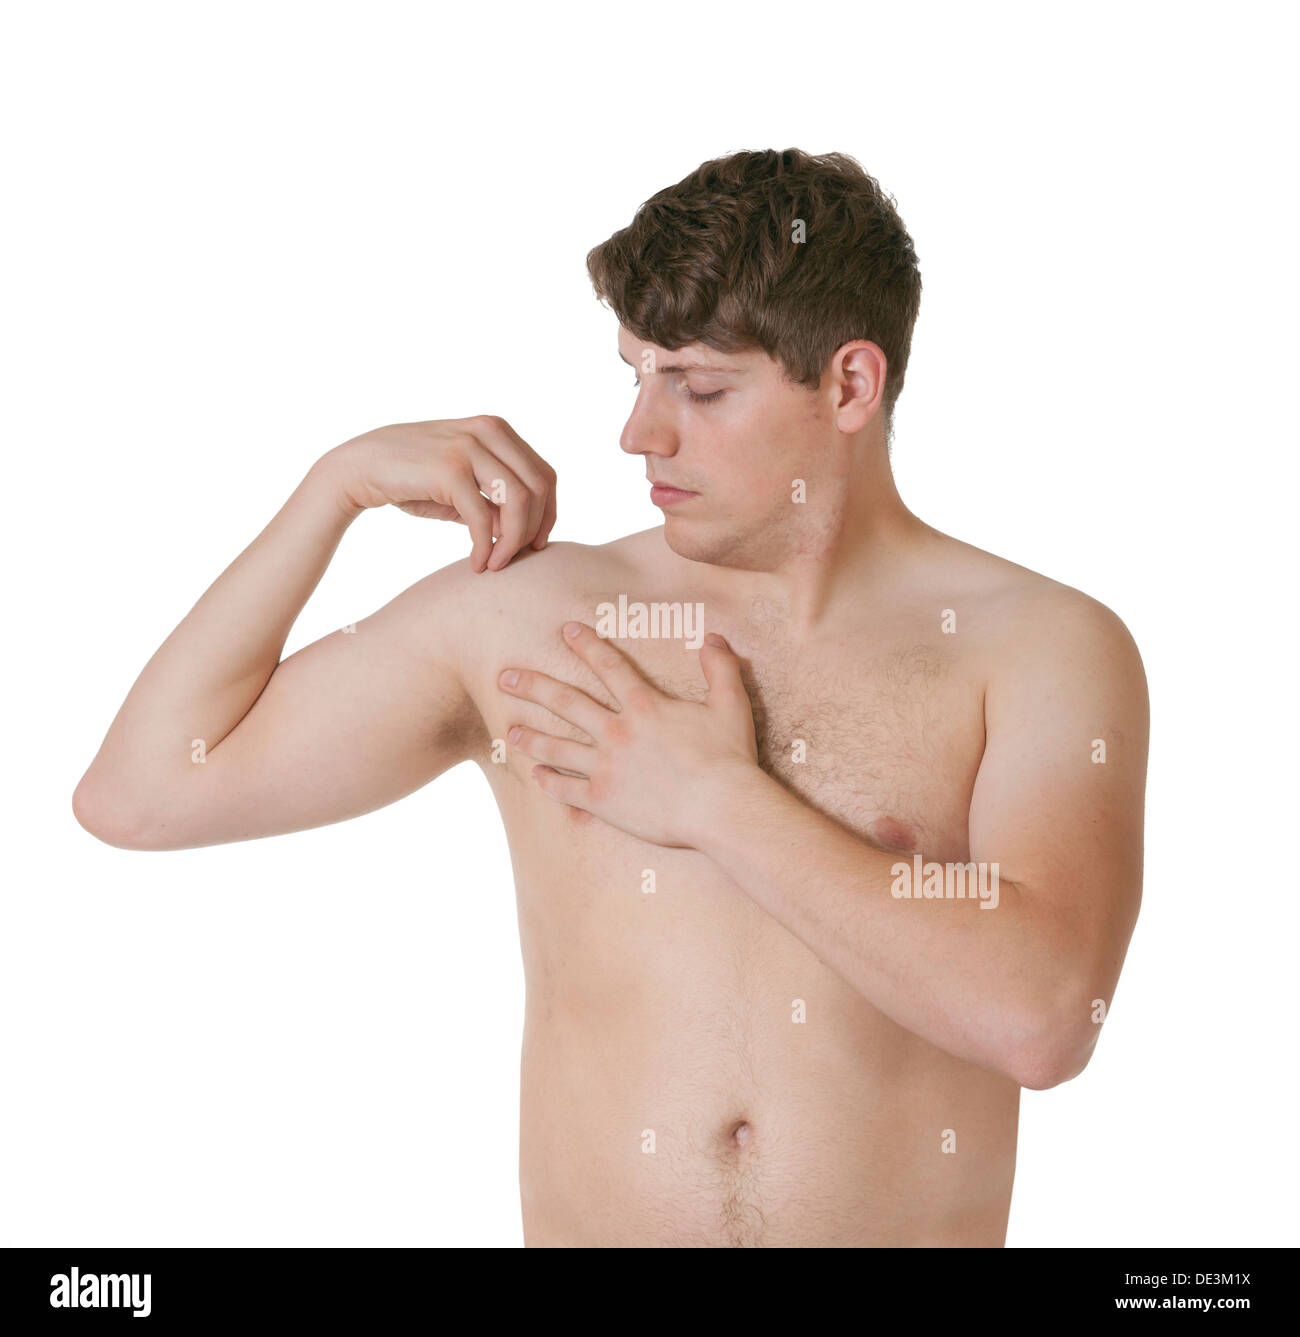 Man with shoulder pain on a white background - Stock Image